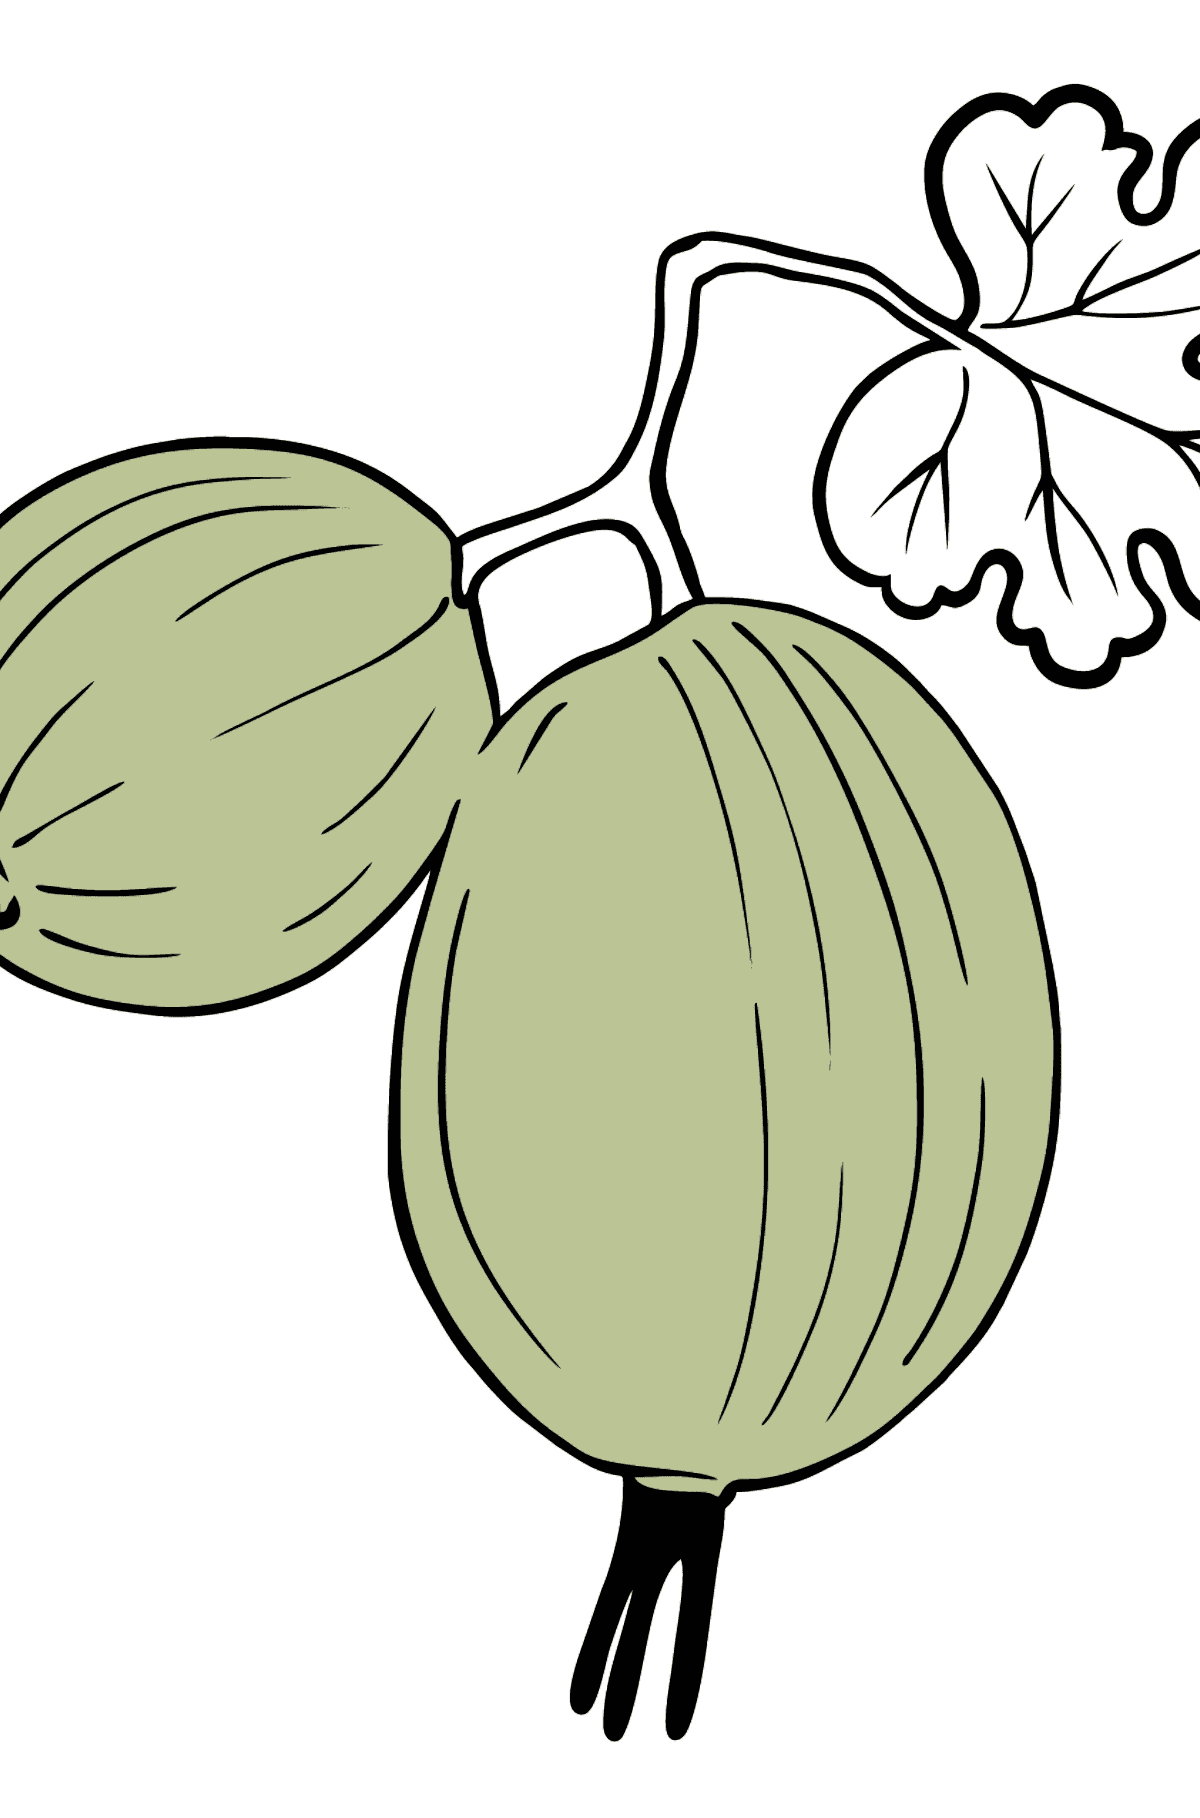 Gooseberry coloring page - Coloring Pages for Kids